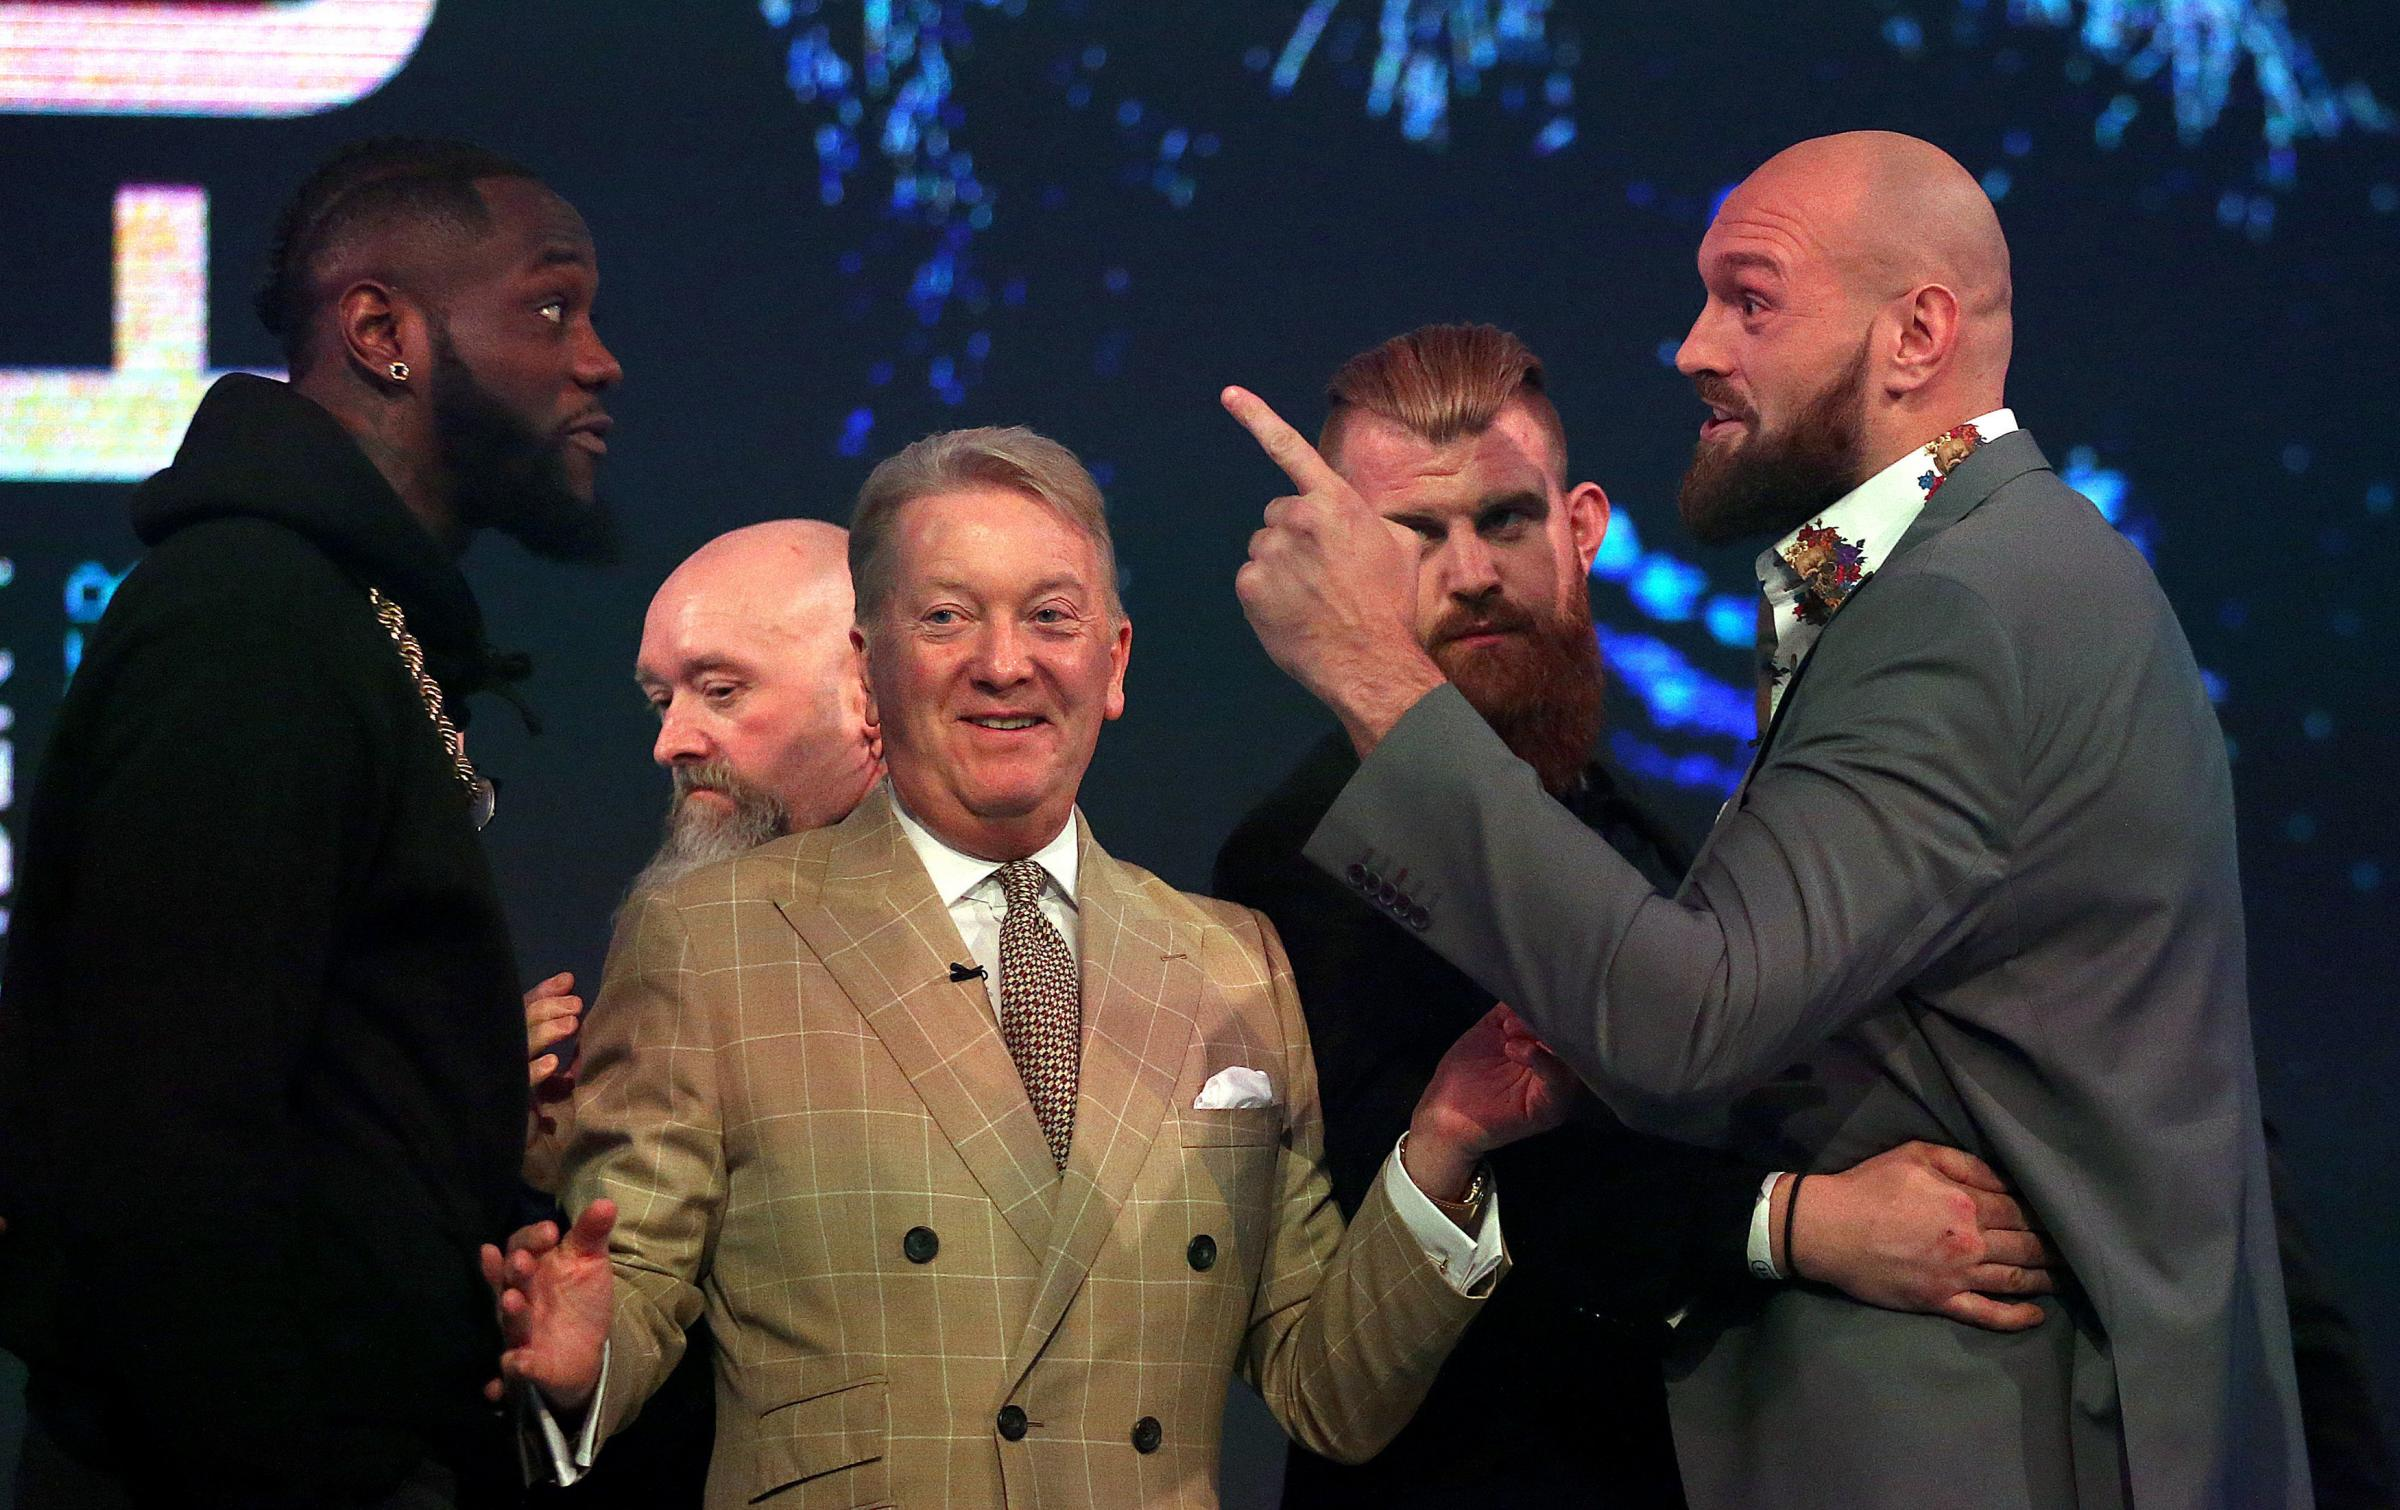 Deontay Wilder, left, and Tyson Fury, right, react as promoter Frank Warren, centre, keeps them apart during a press conference. Picture: Steven Paston/PA Wire